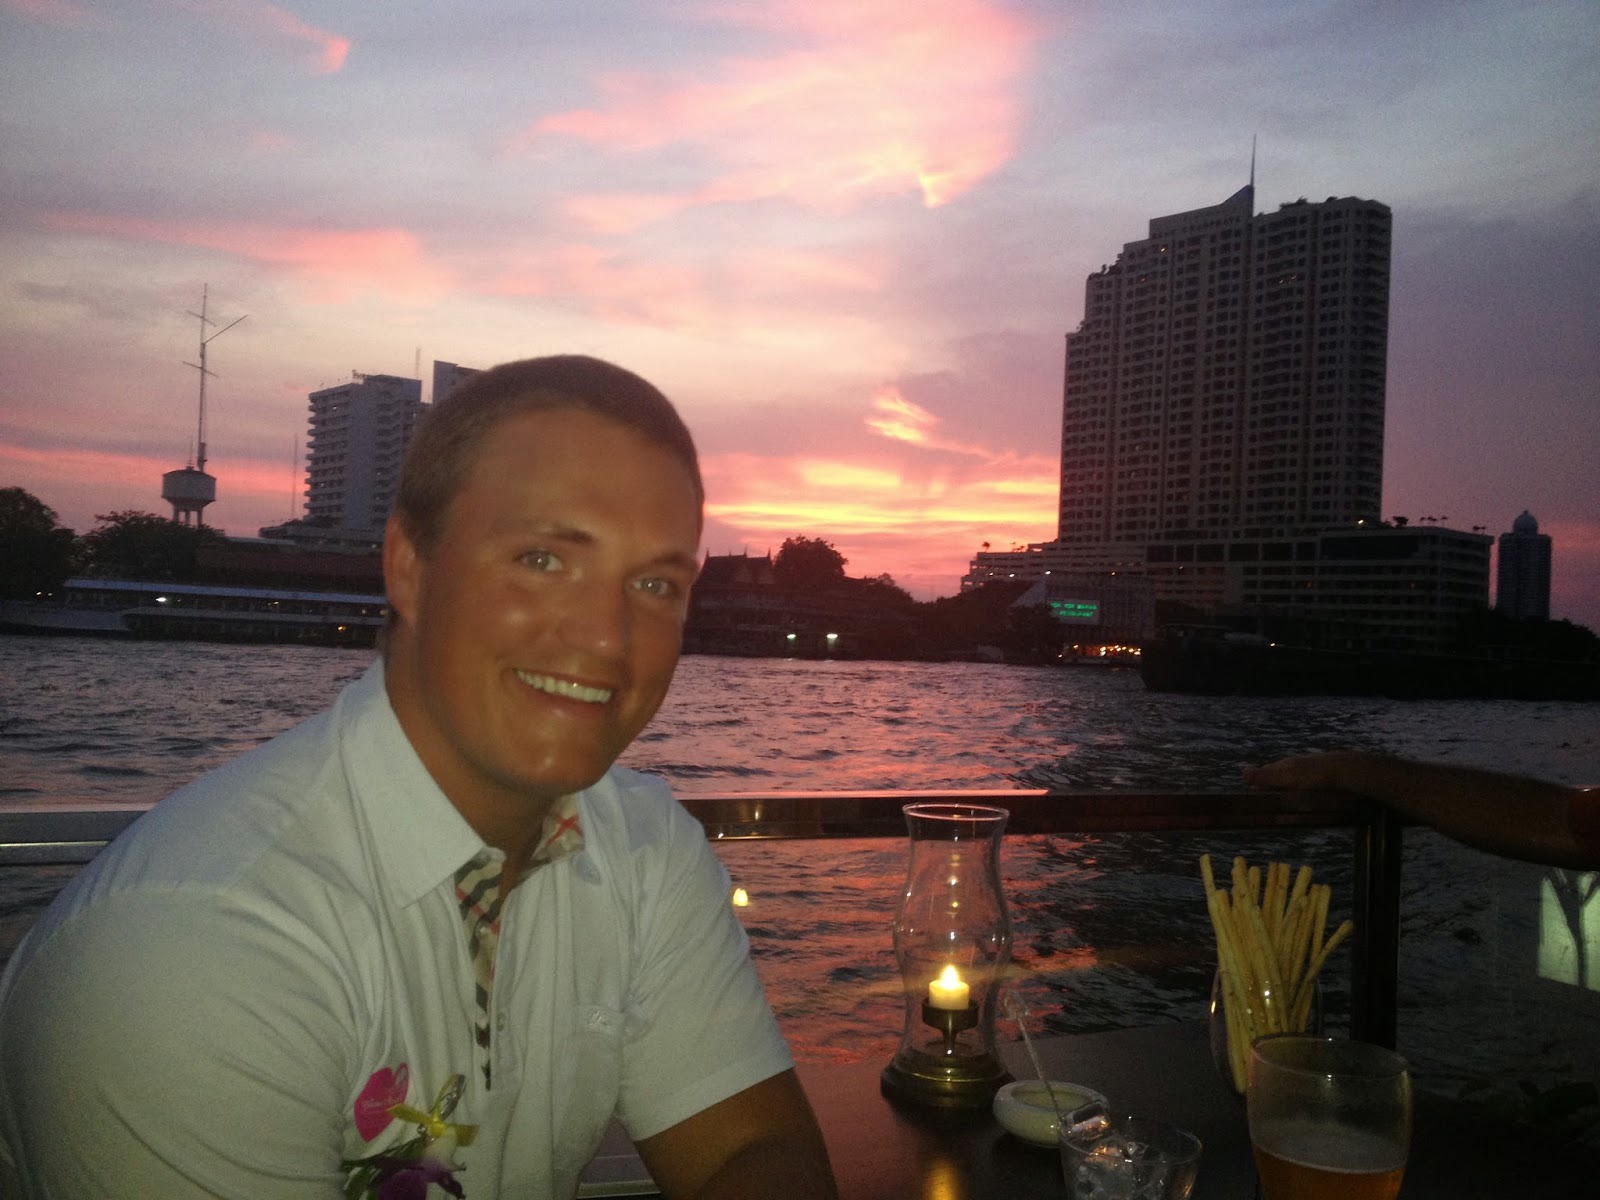 Chao Phraya Dinner Cruise Sunset